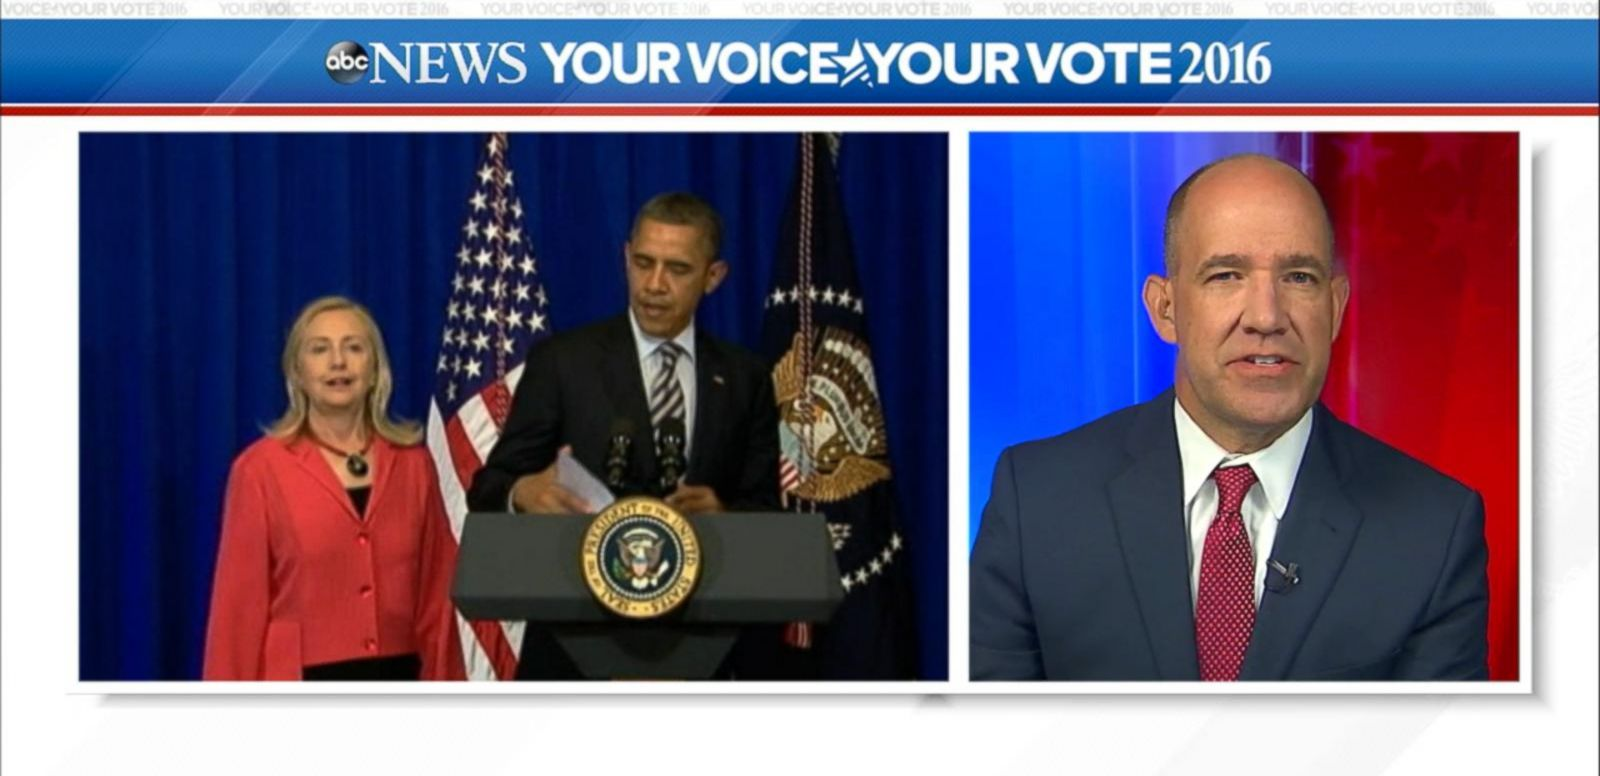 VIDEO: President Obama Defends Policies Against Donald Trump Attacks